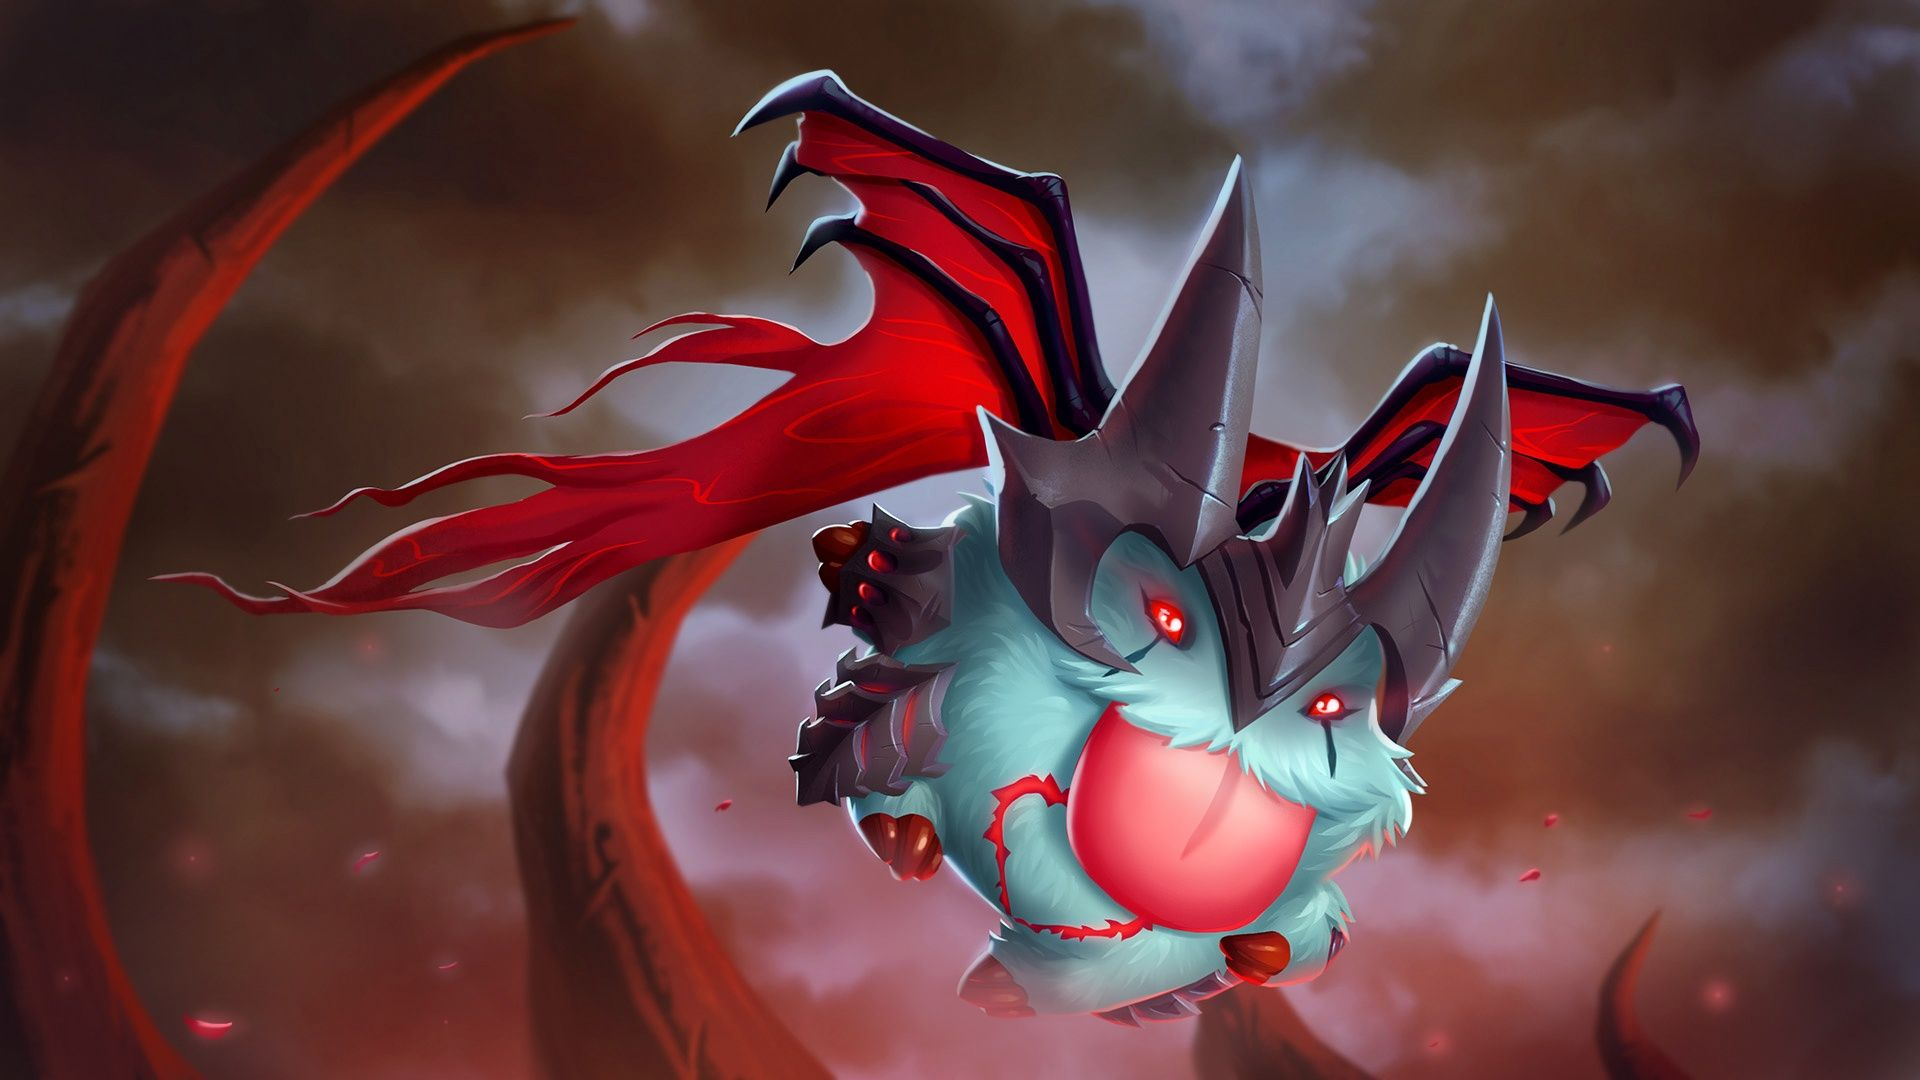 Aatrox Poro Champion League of Legends 1920x1080 | LoL ...